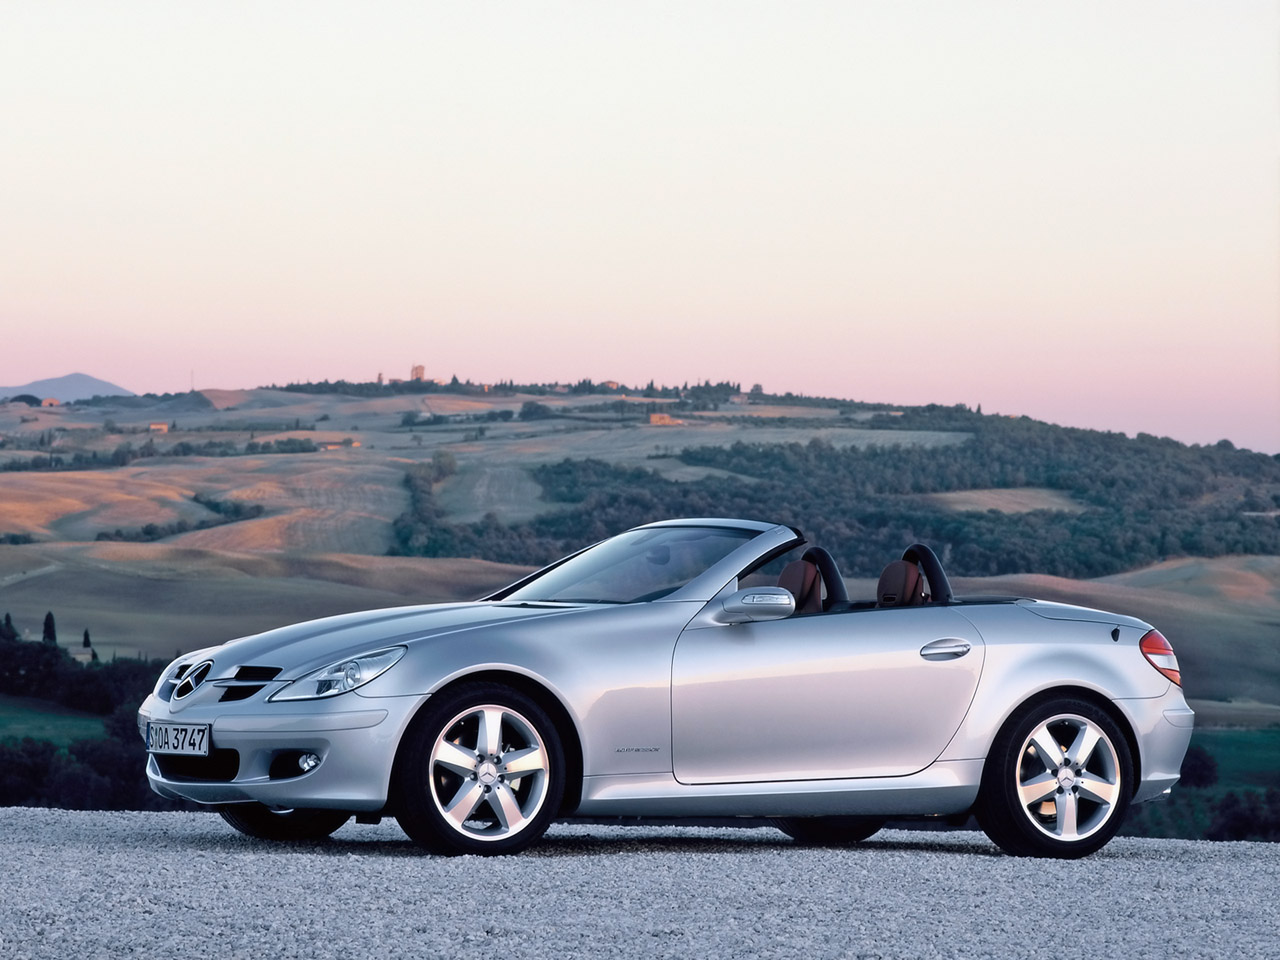 Mercedes benz slk 200 kompressor technical details for Mercedes benz slk accessories